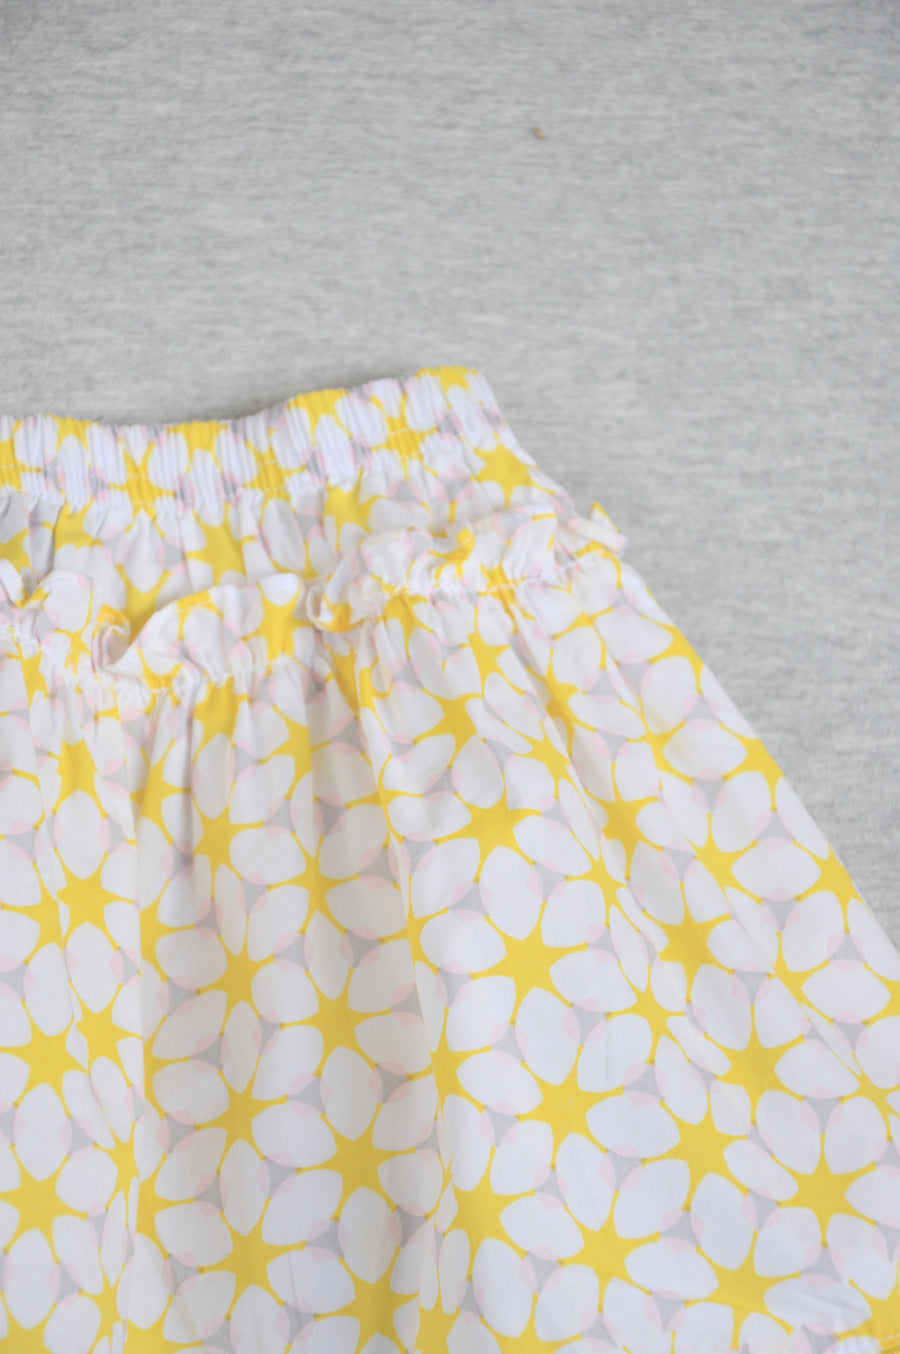 Papoose - nearly new - white & yellow patterned skirt, size 6-12